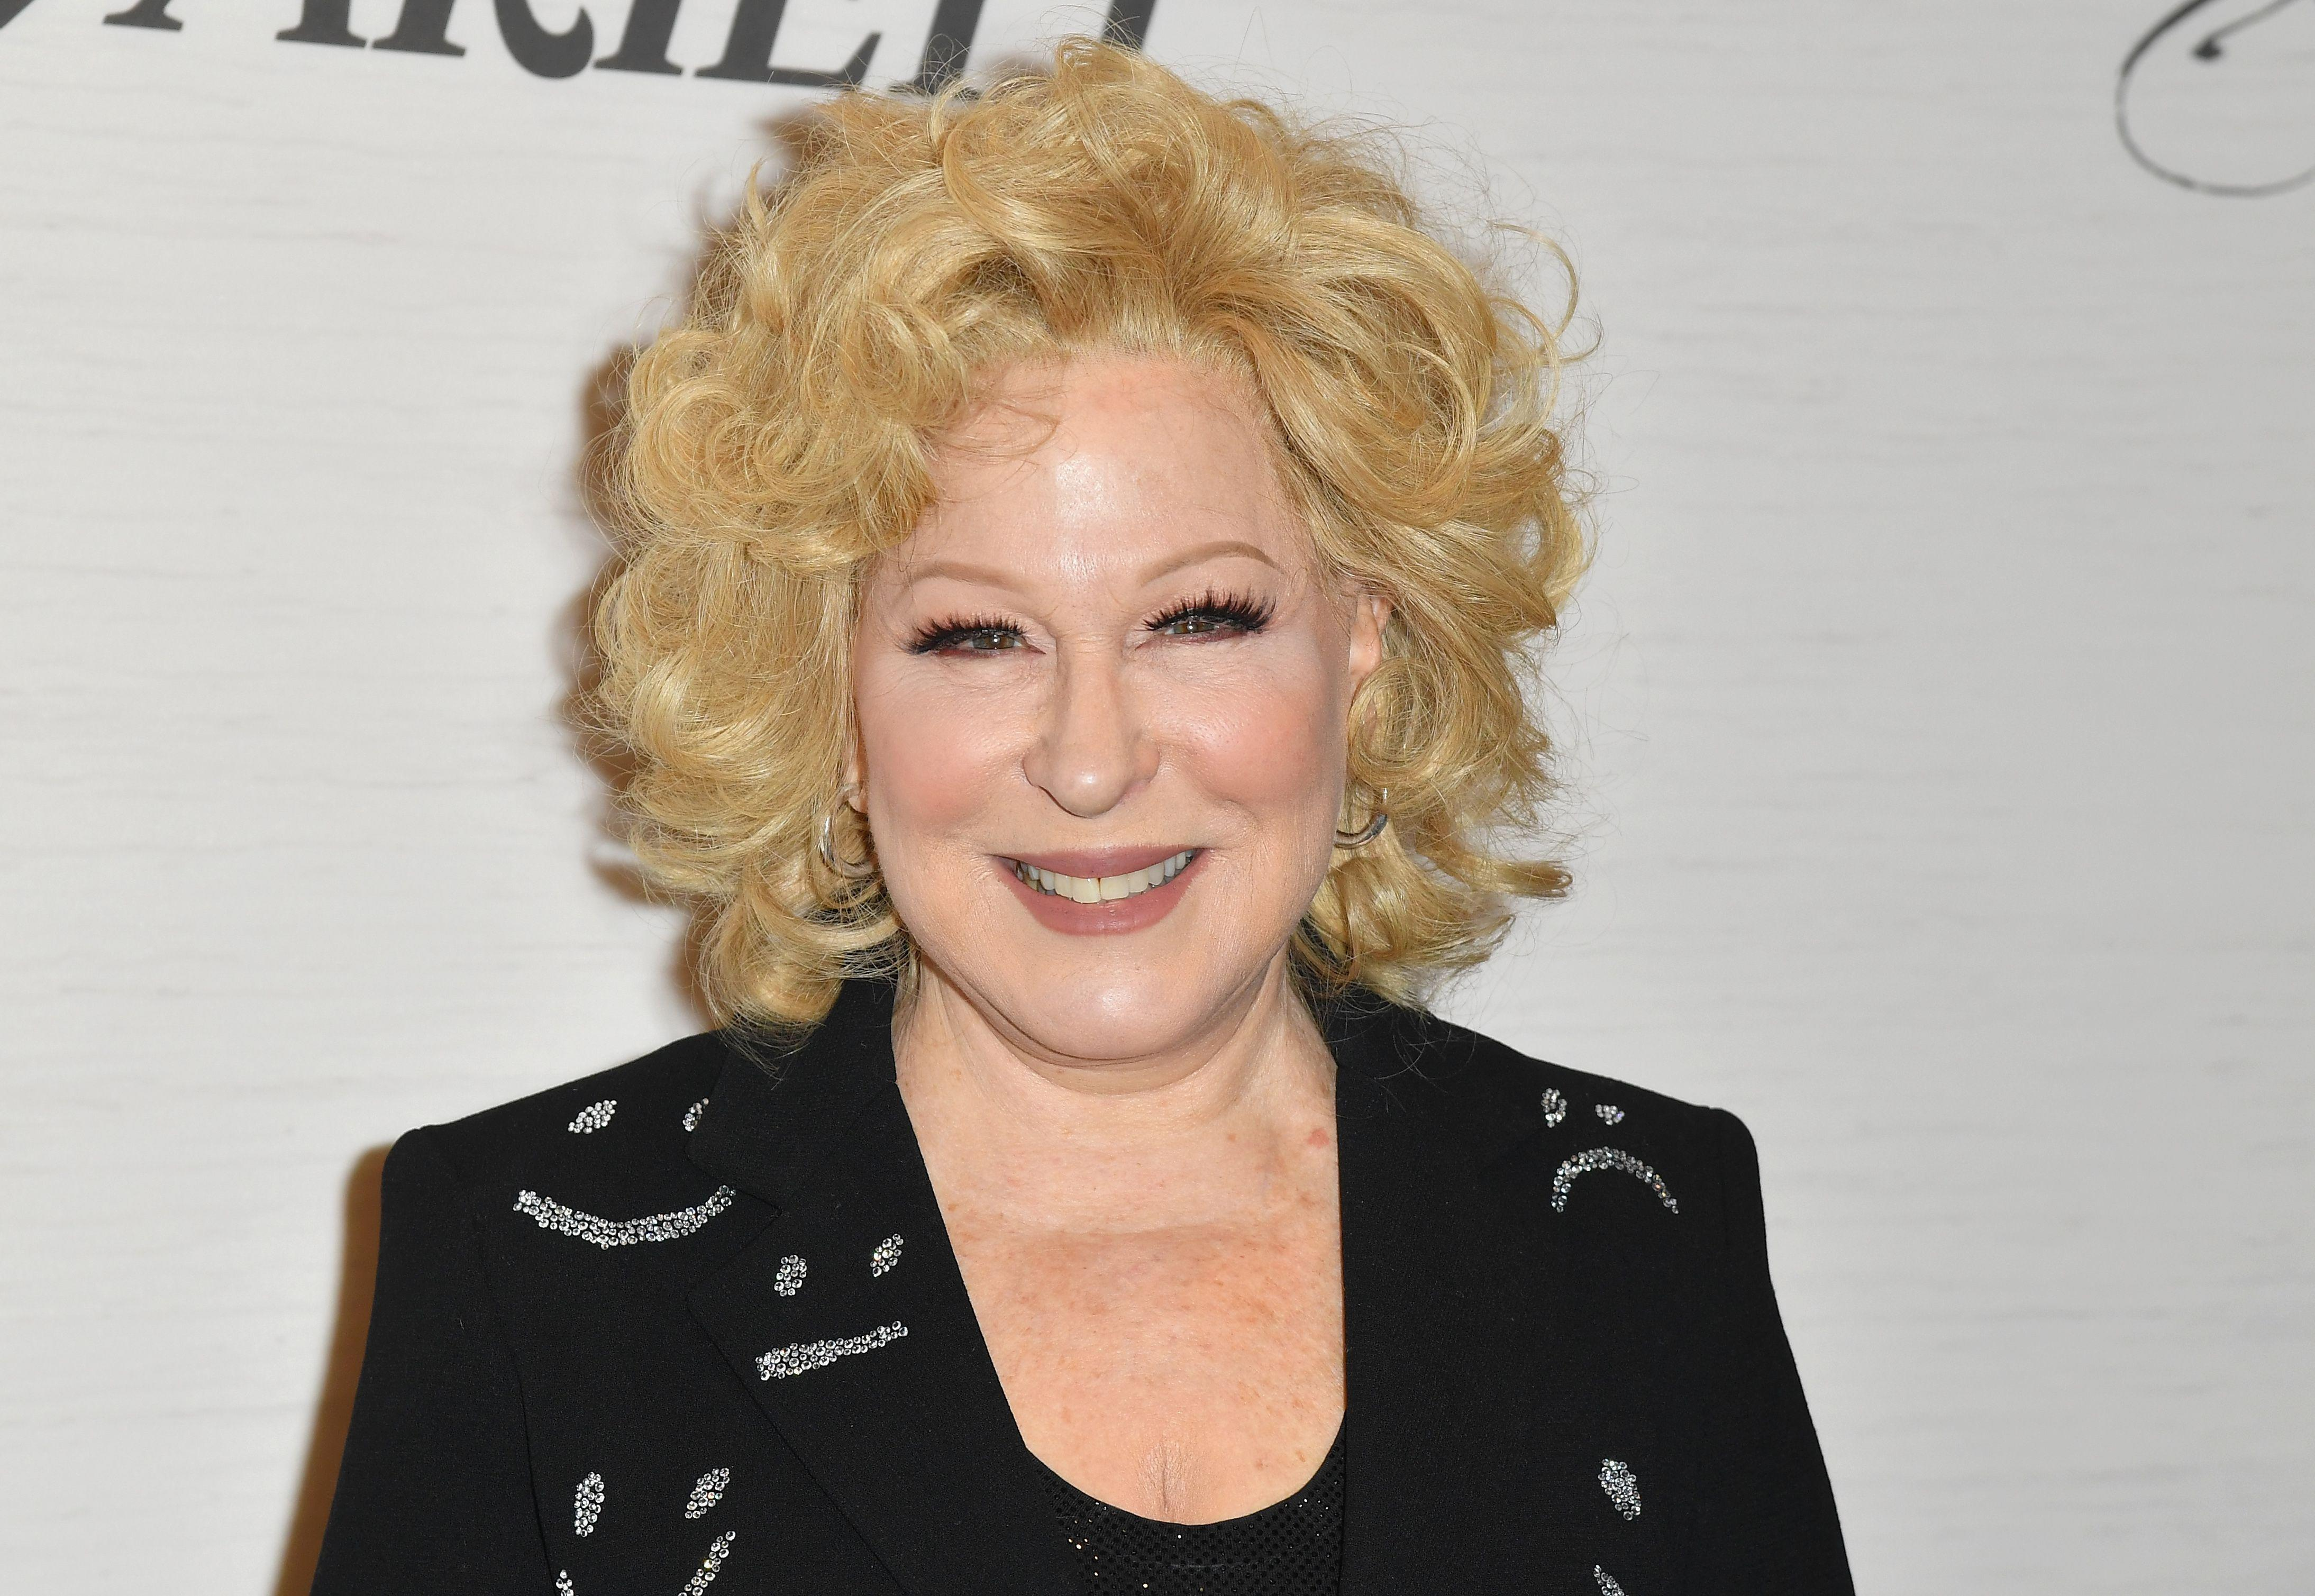 Bette Midler writes anti-Trump poem: 'There once was a girl from Slovenia'